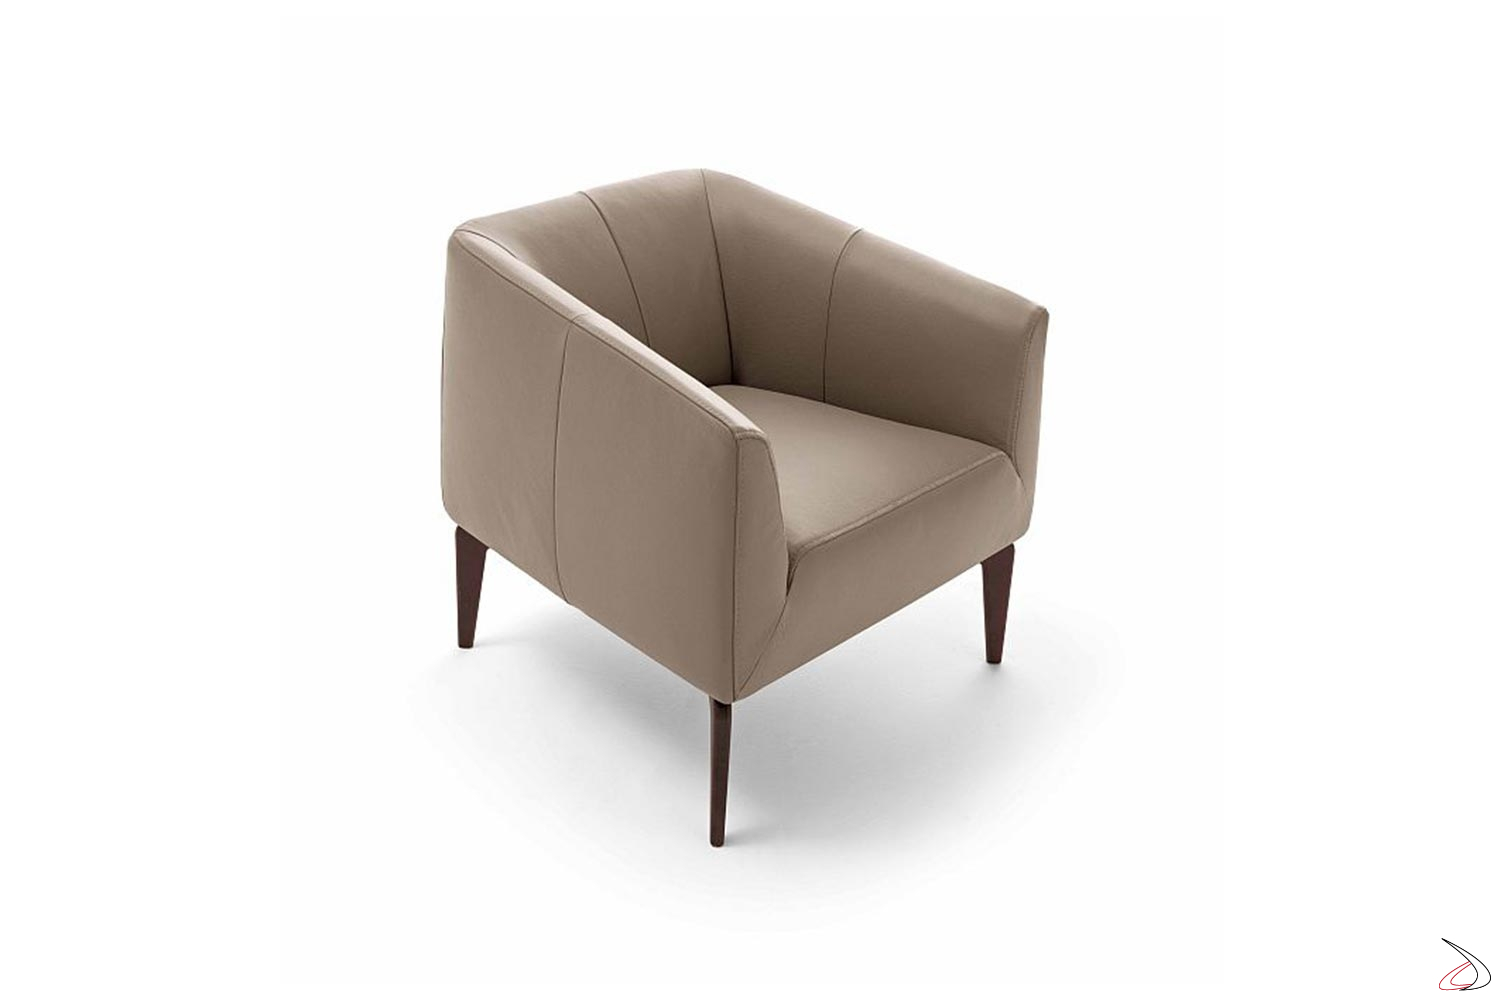 Poltroncina Per Camera Da Letto.Jest Armchair Minimal And Informal Comfortable And Versatile